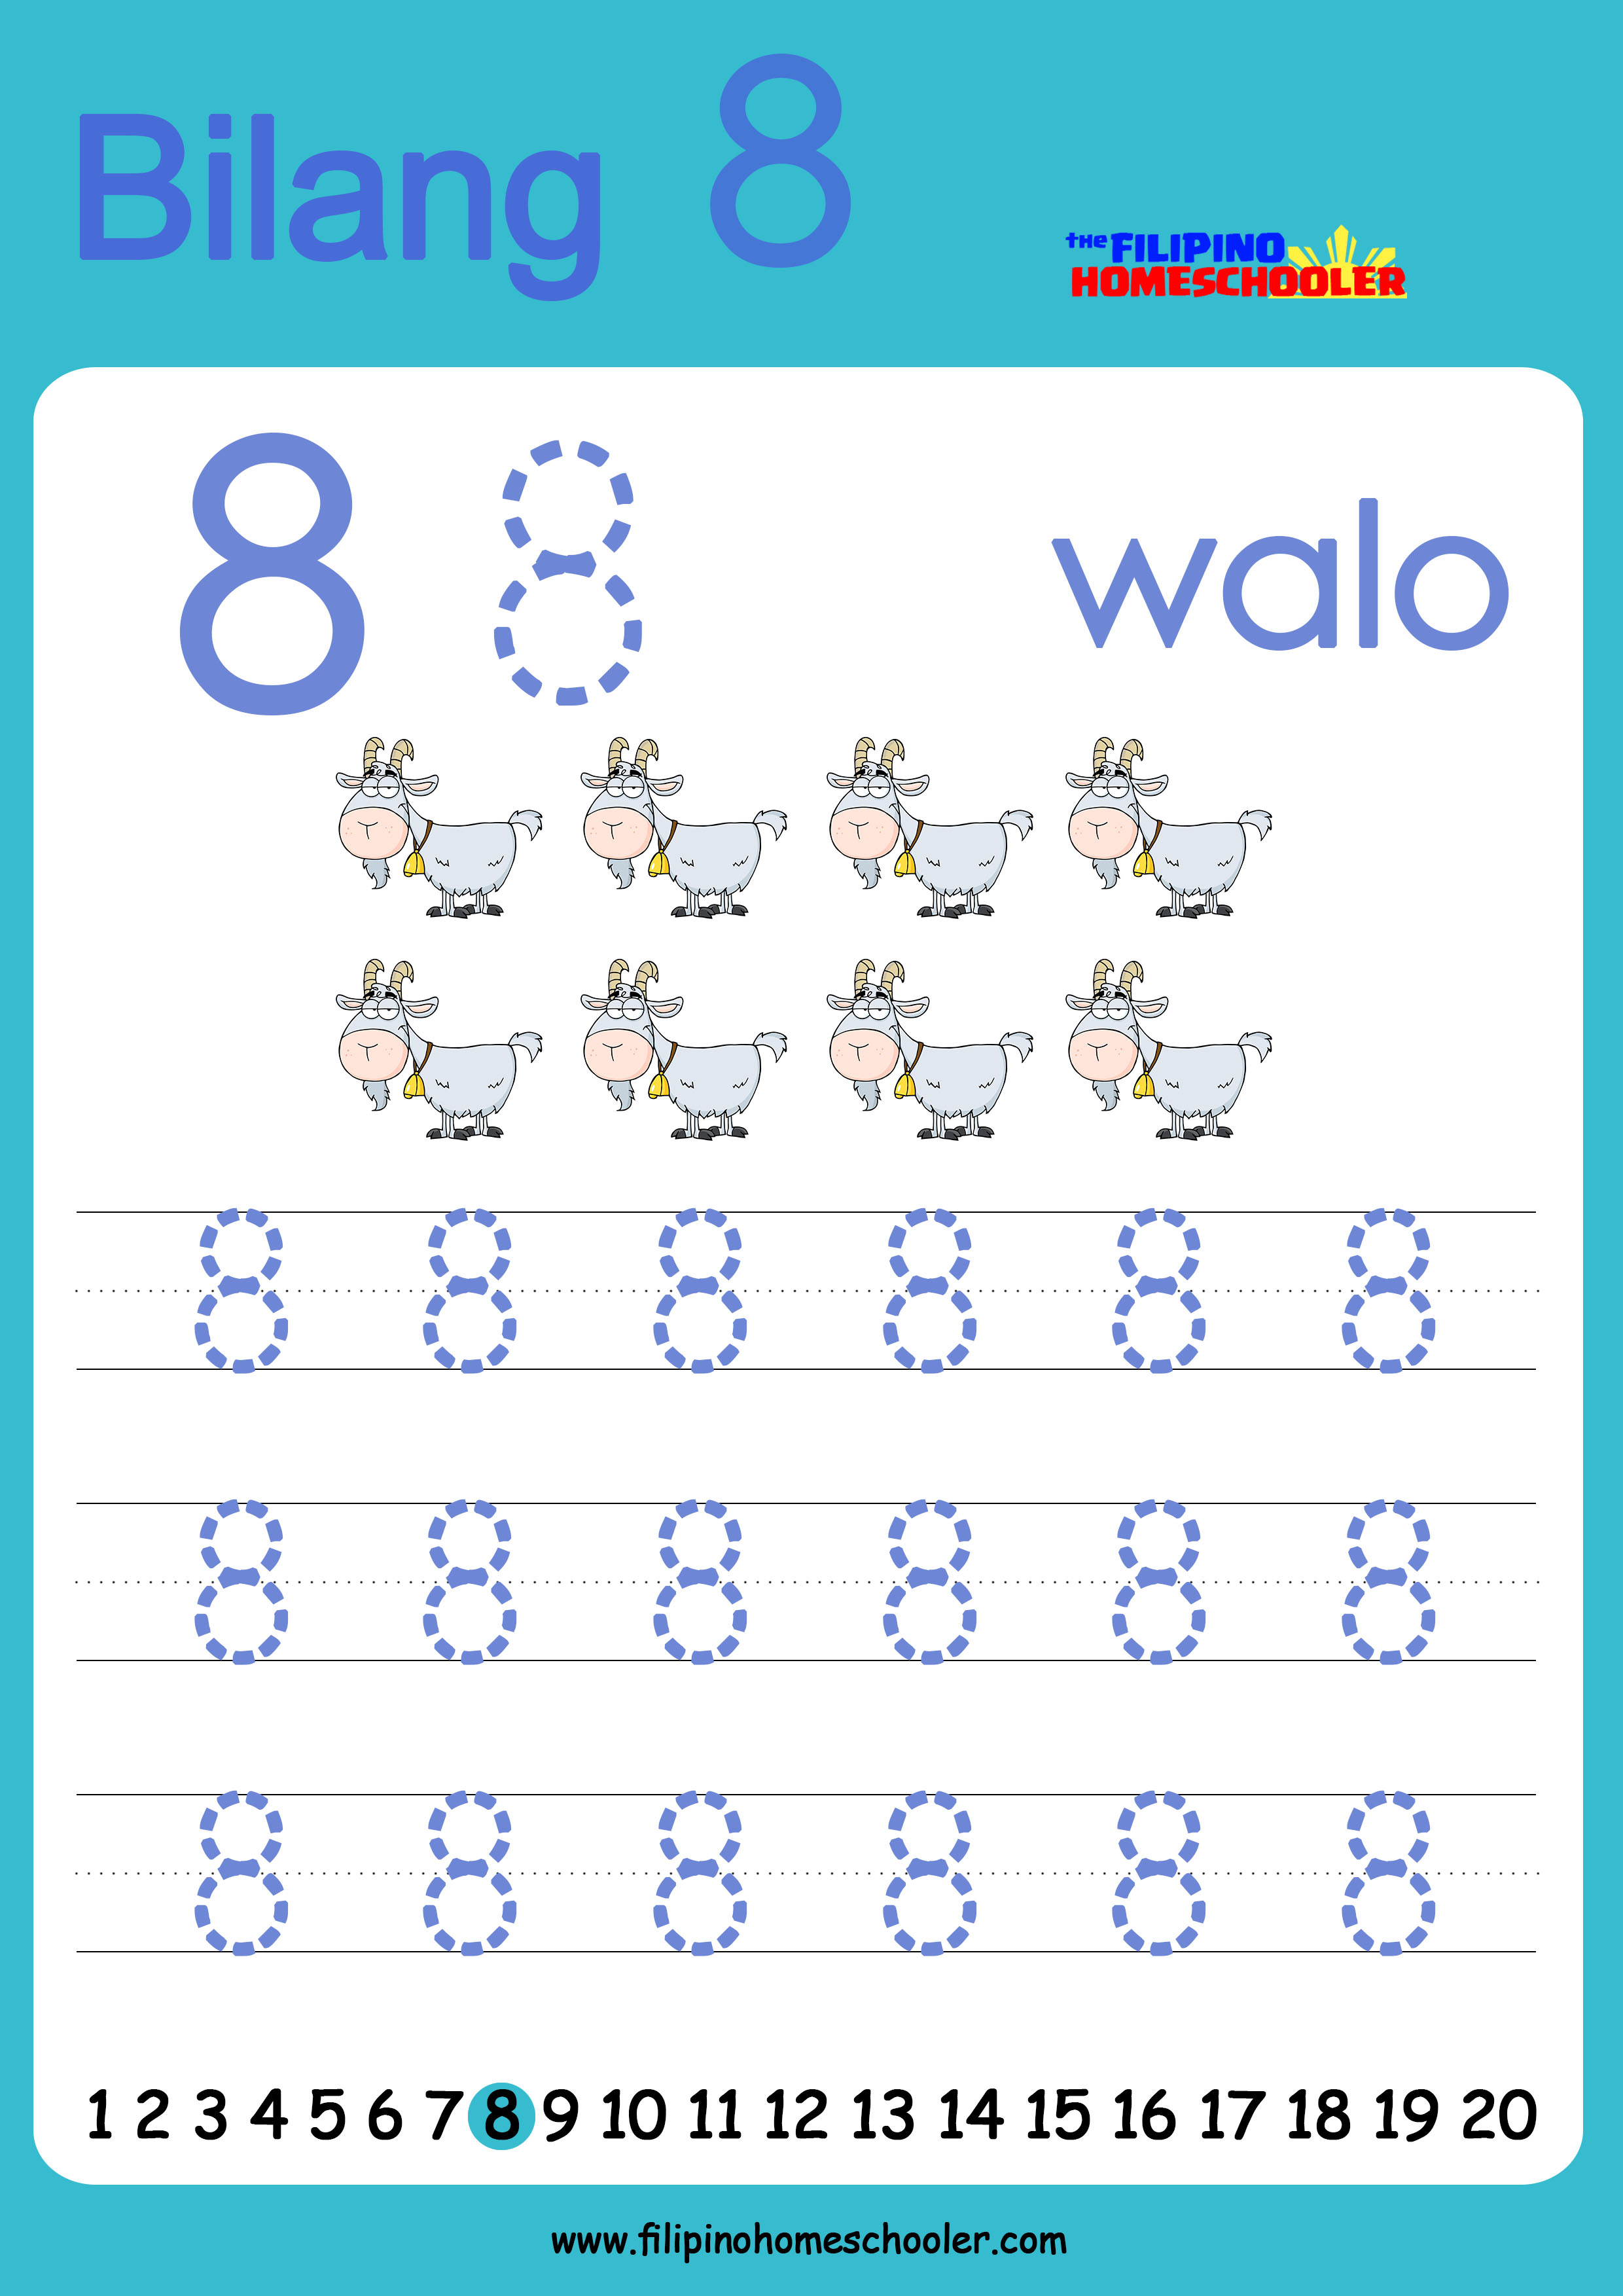 Preschool Letter Worksheet K additionally Alphabet Worksheets Handwriting Lower Case Letter J further Cgrmlwnvbnzlcnqymdezmdmzmc Yndeyny Xyji Ohjllm zw furthermore Original as well Italian For Kids Worksheets Learning Italian And Language. on number 10 tracing worksheets